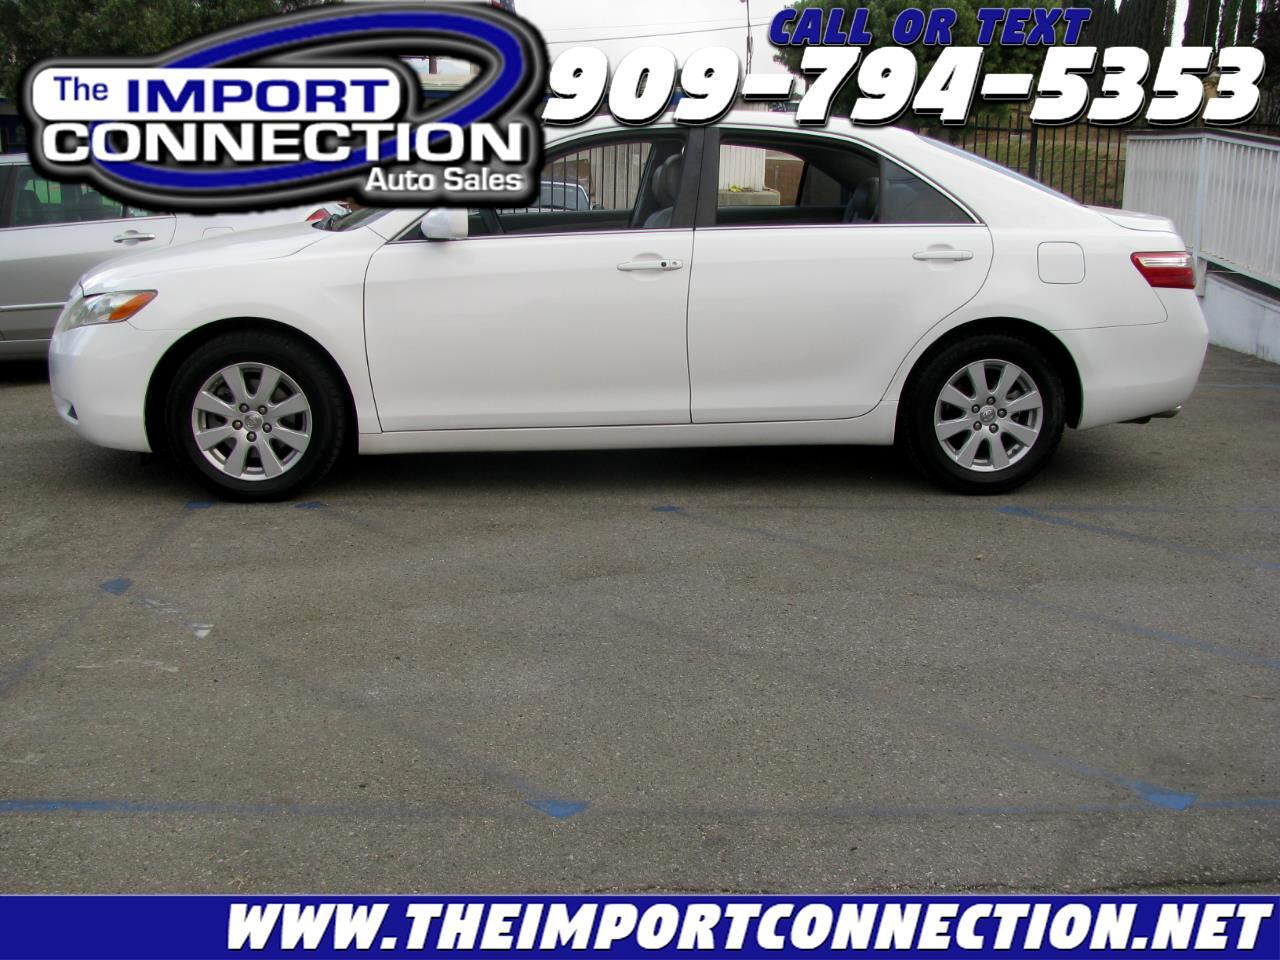 Toyota Camry 4dr Sdn V6 Auto XLE (Natl) 2008